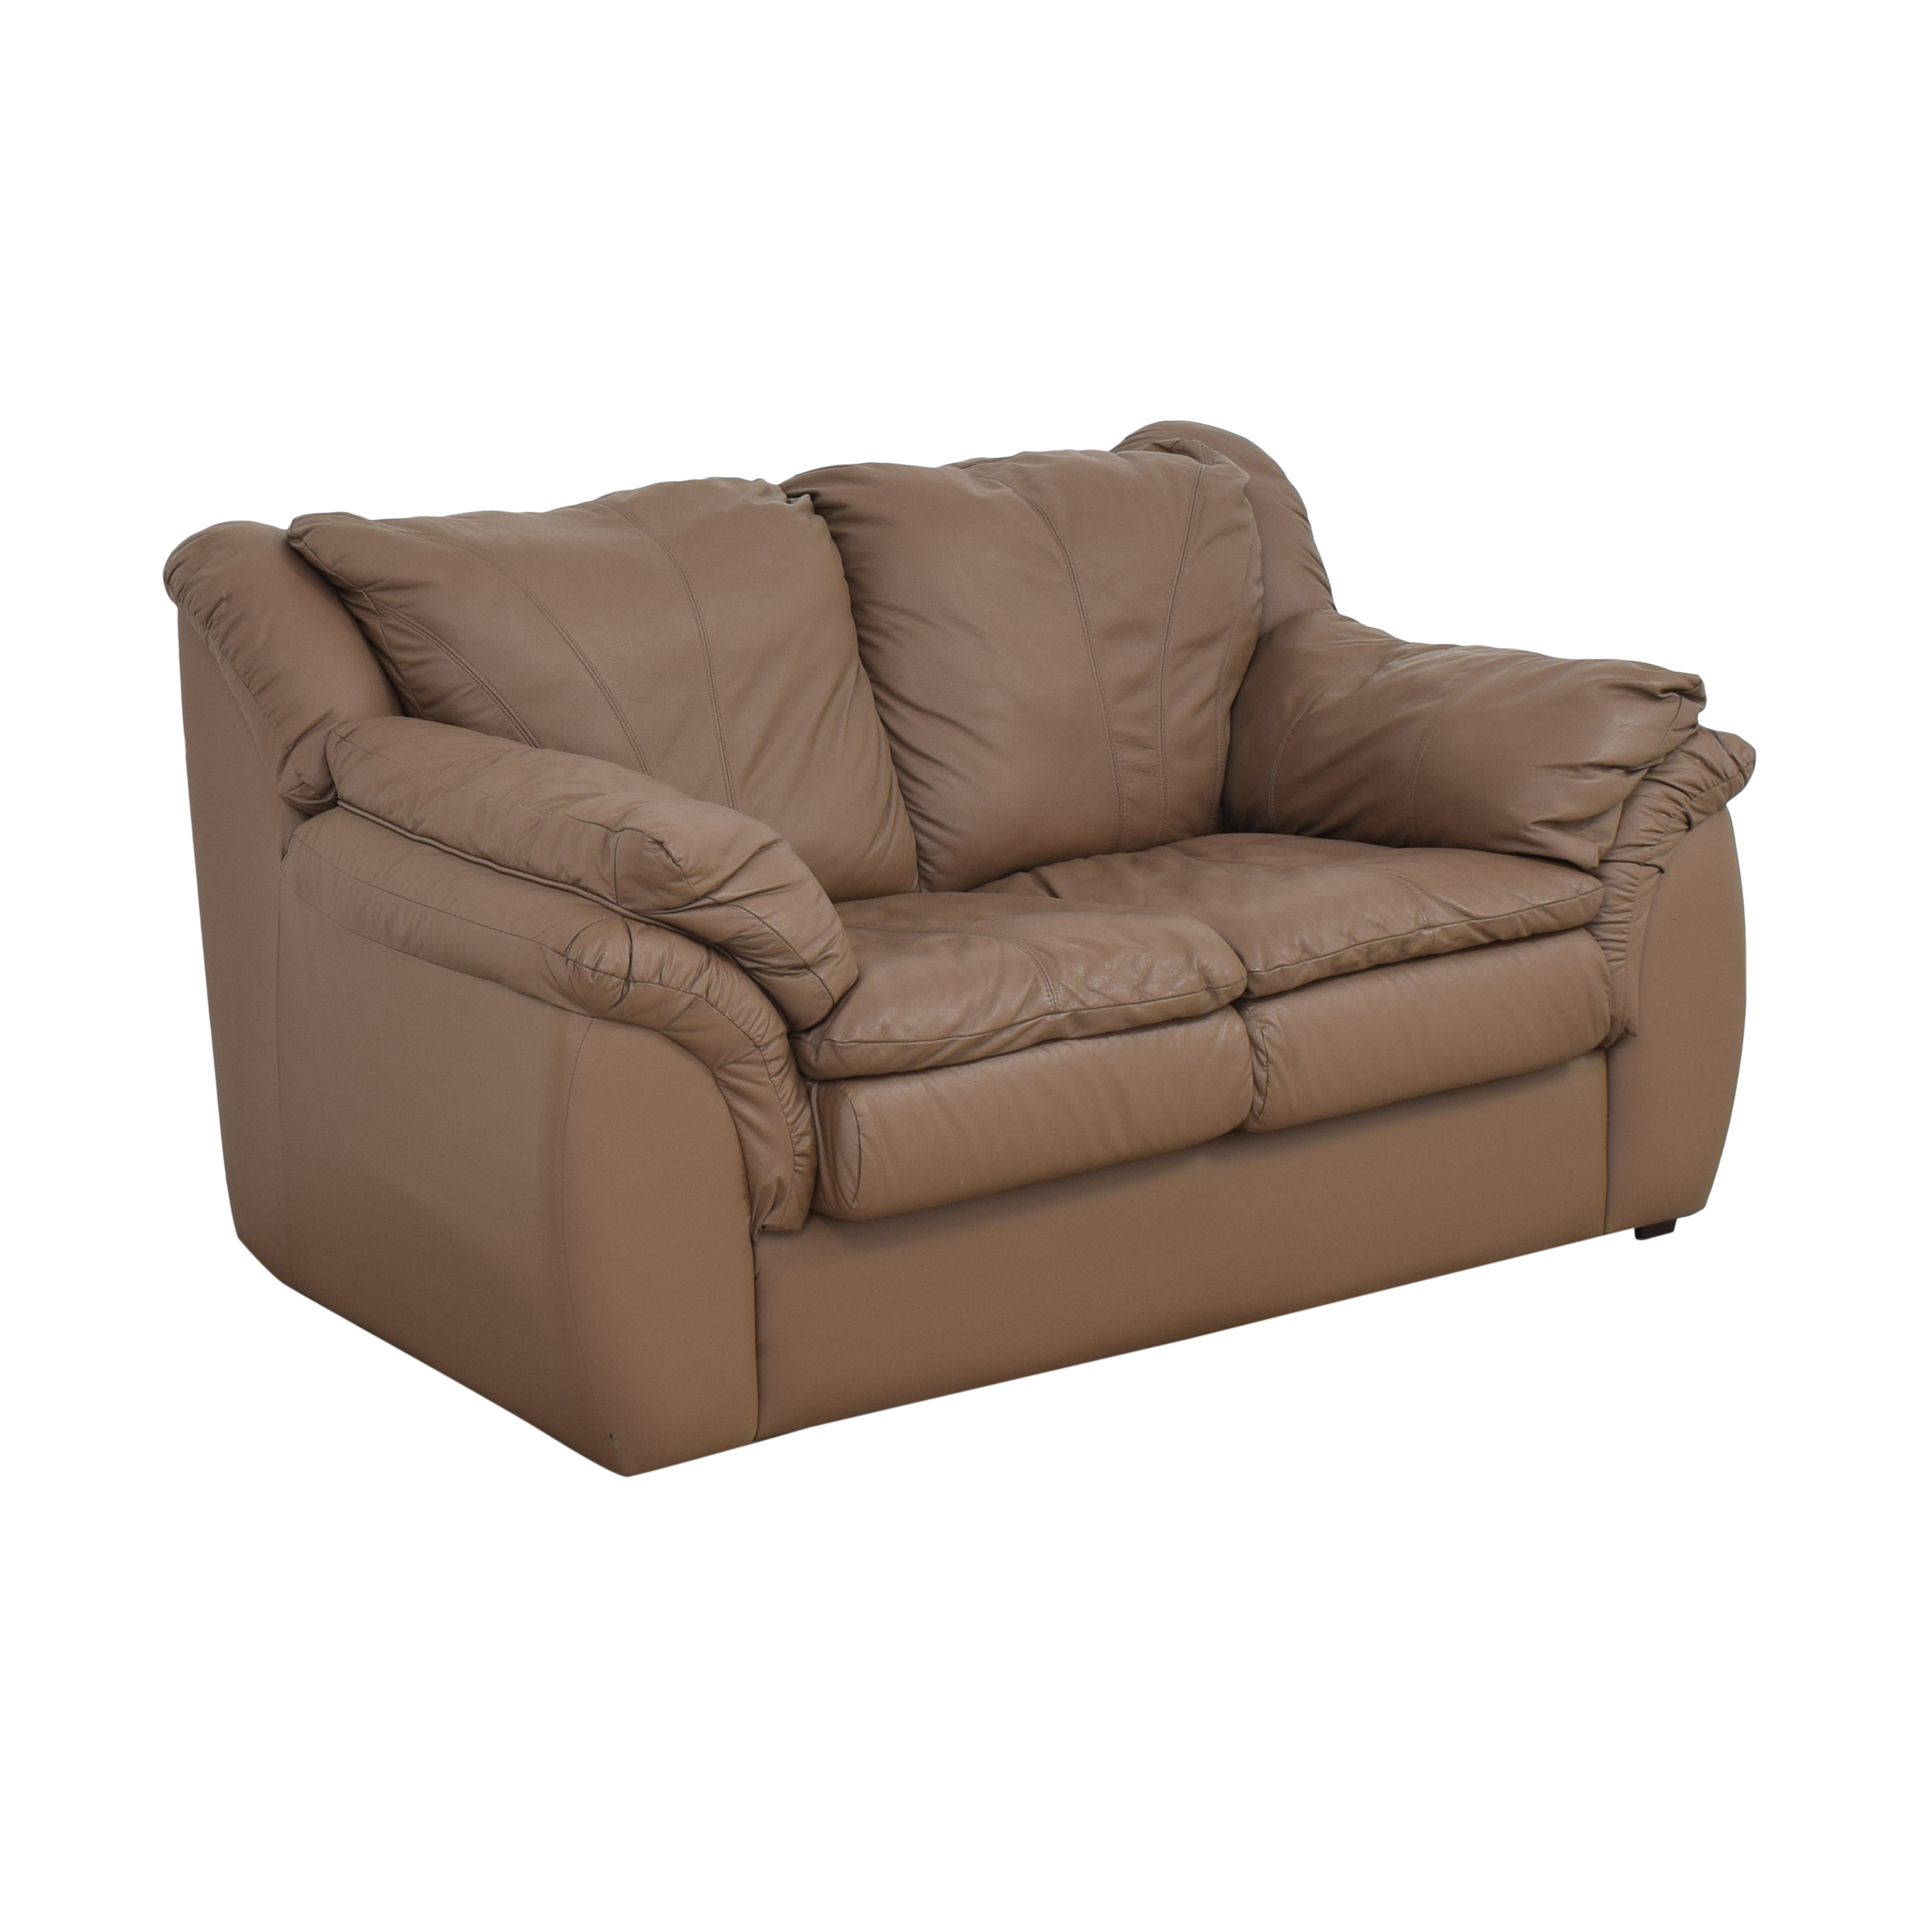 buy Plush Loveseat with Arm Cushions  Sofas